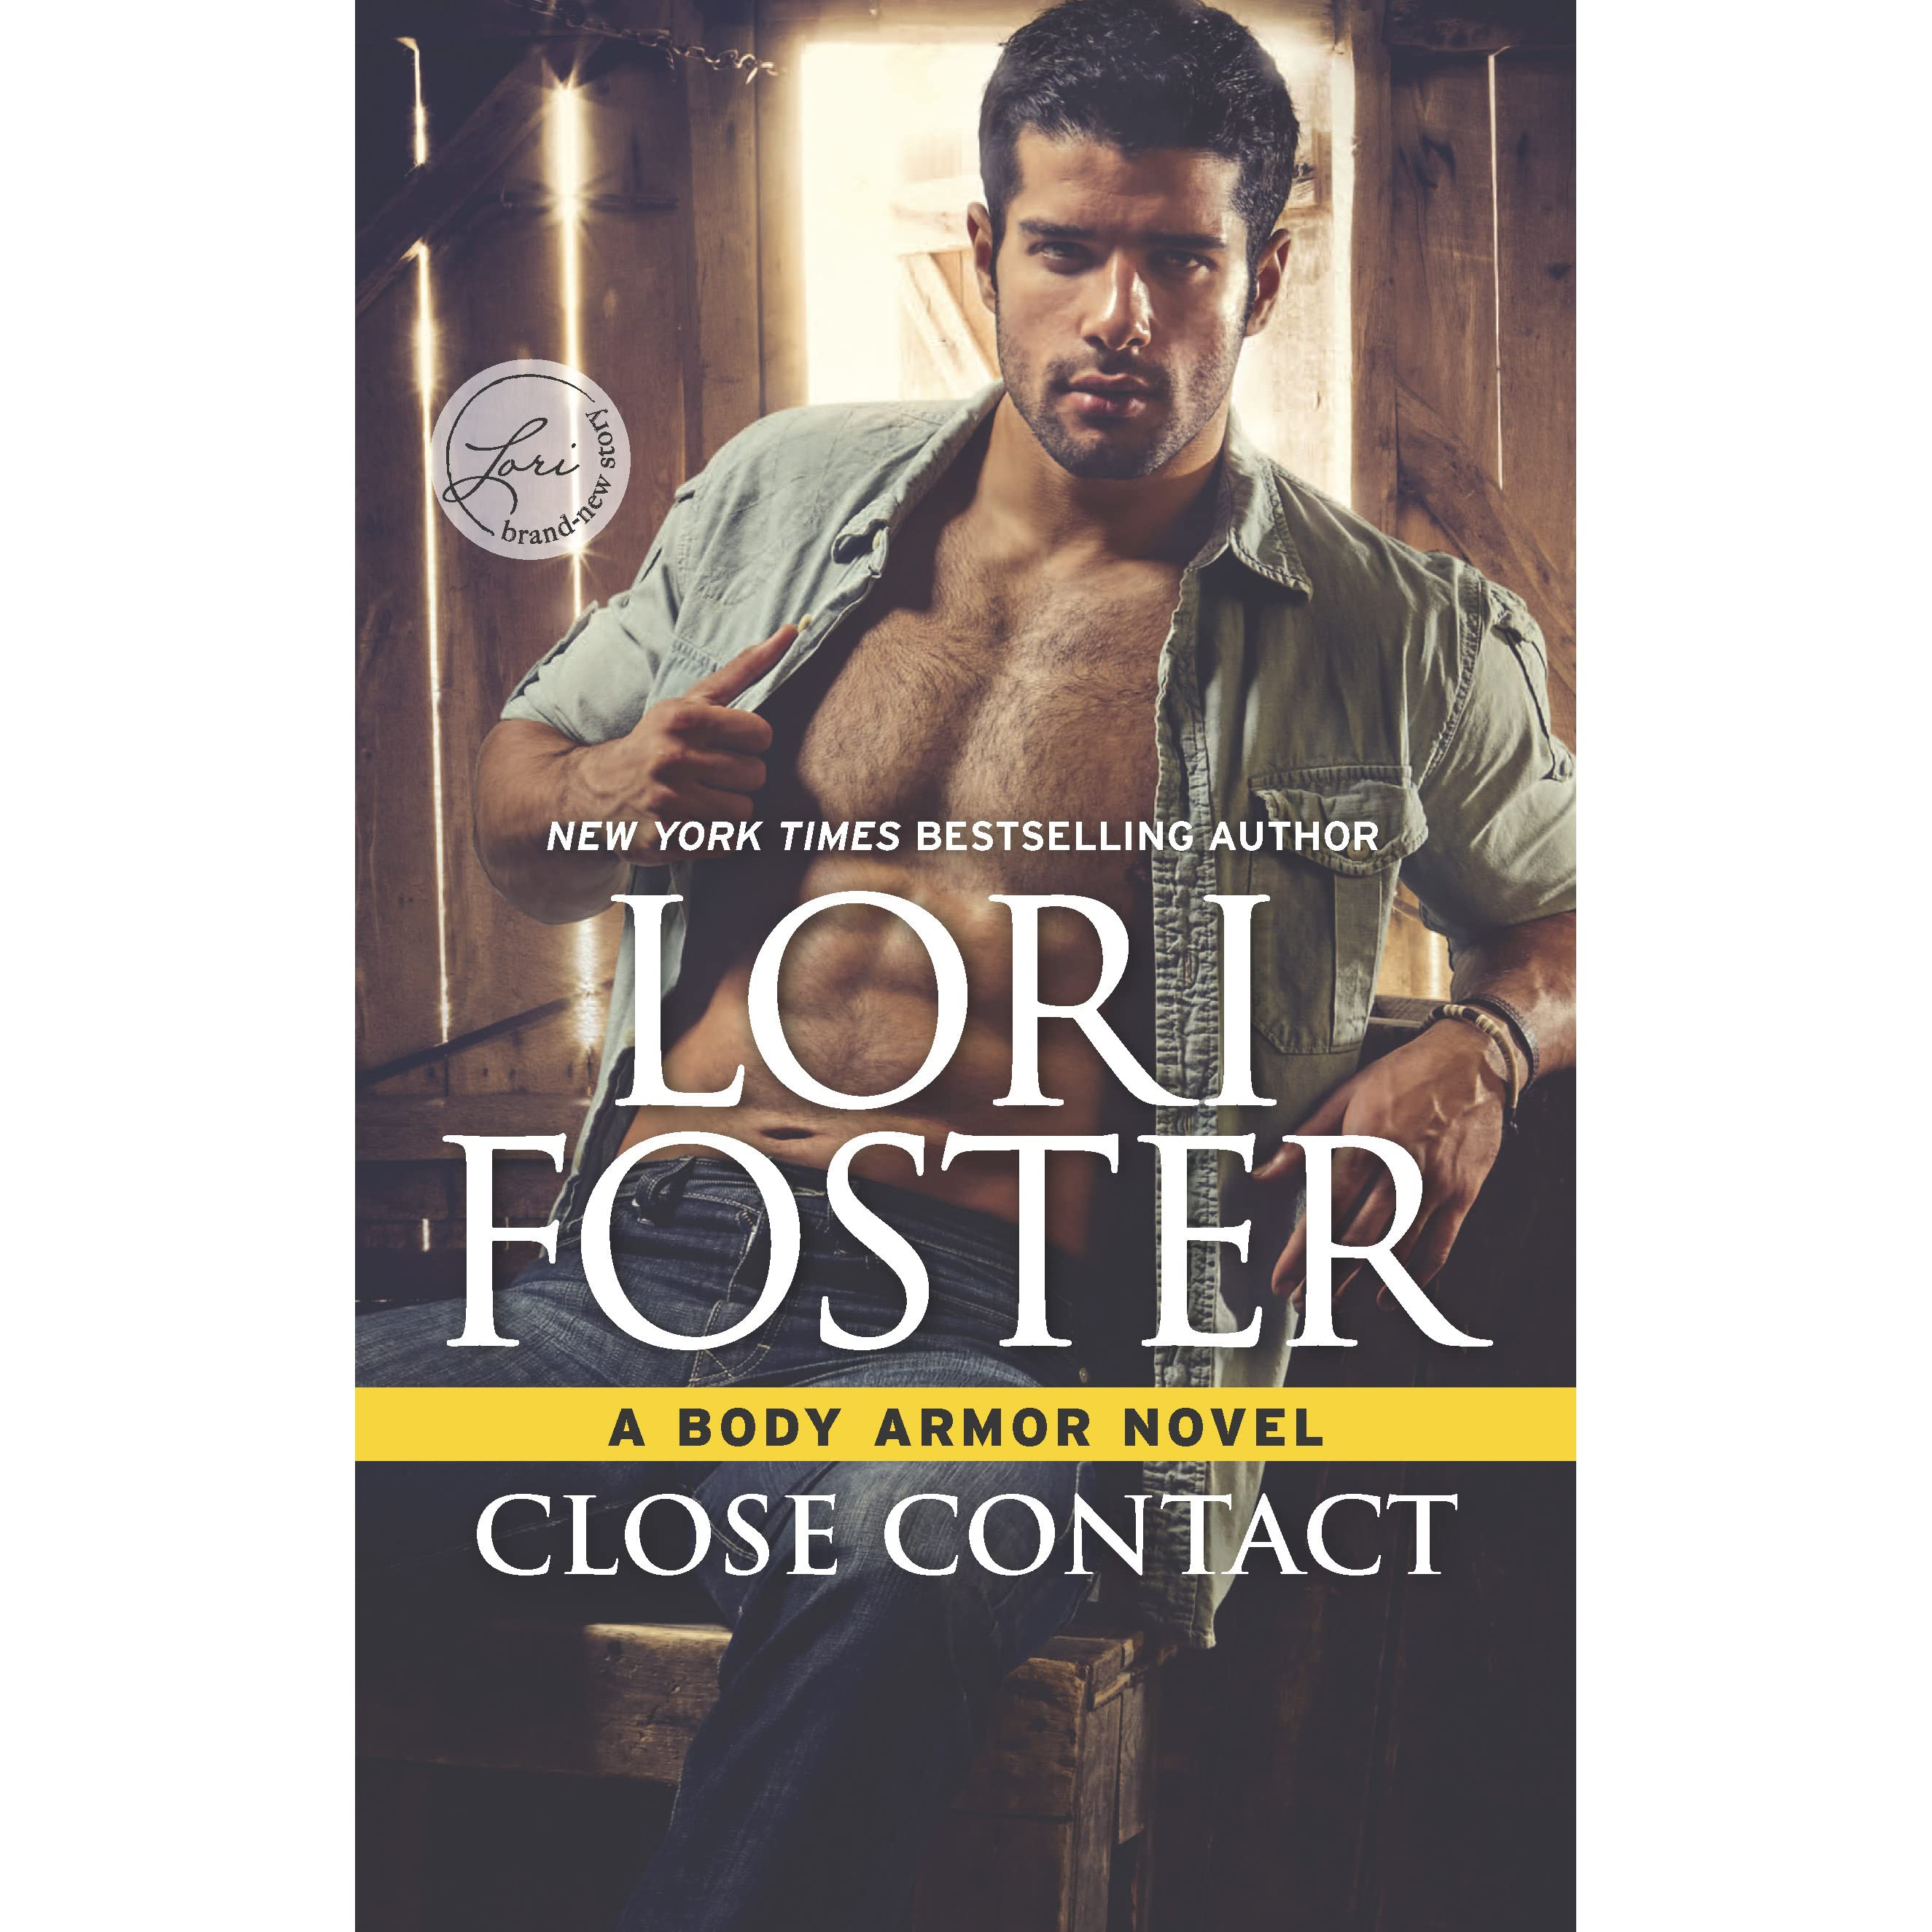 Lori foster goodreads giveaways